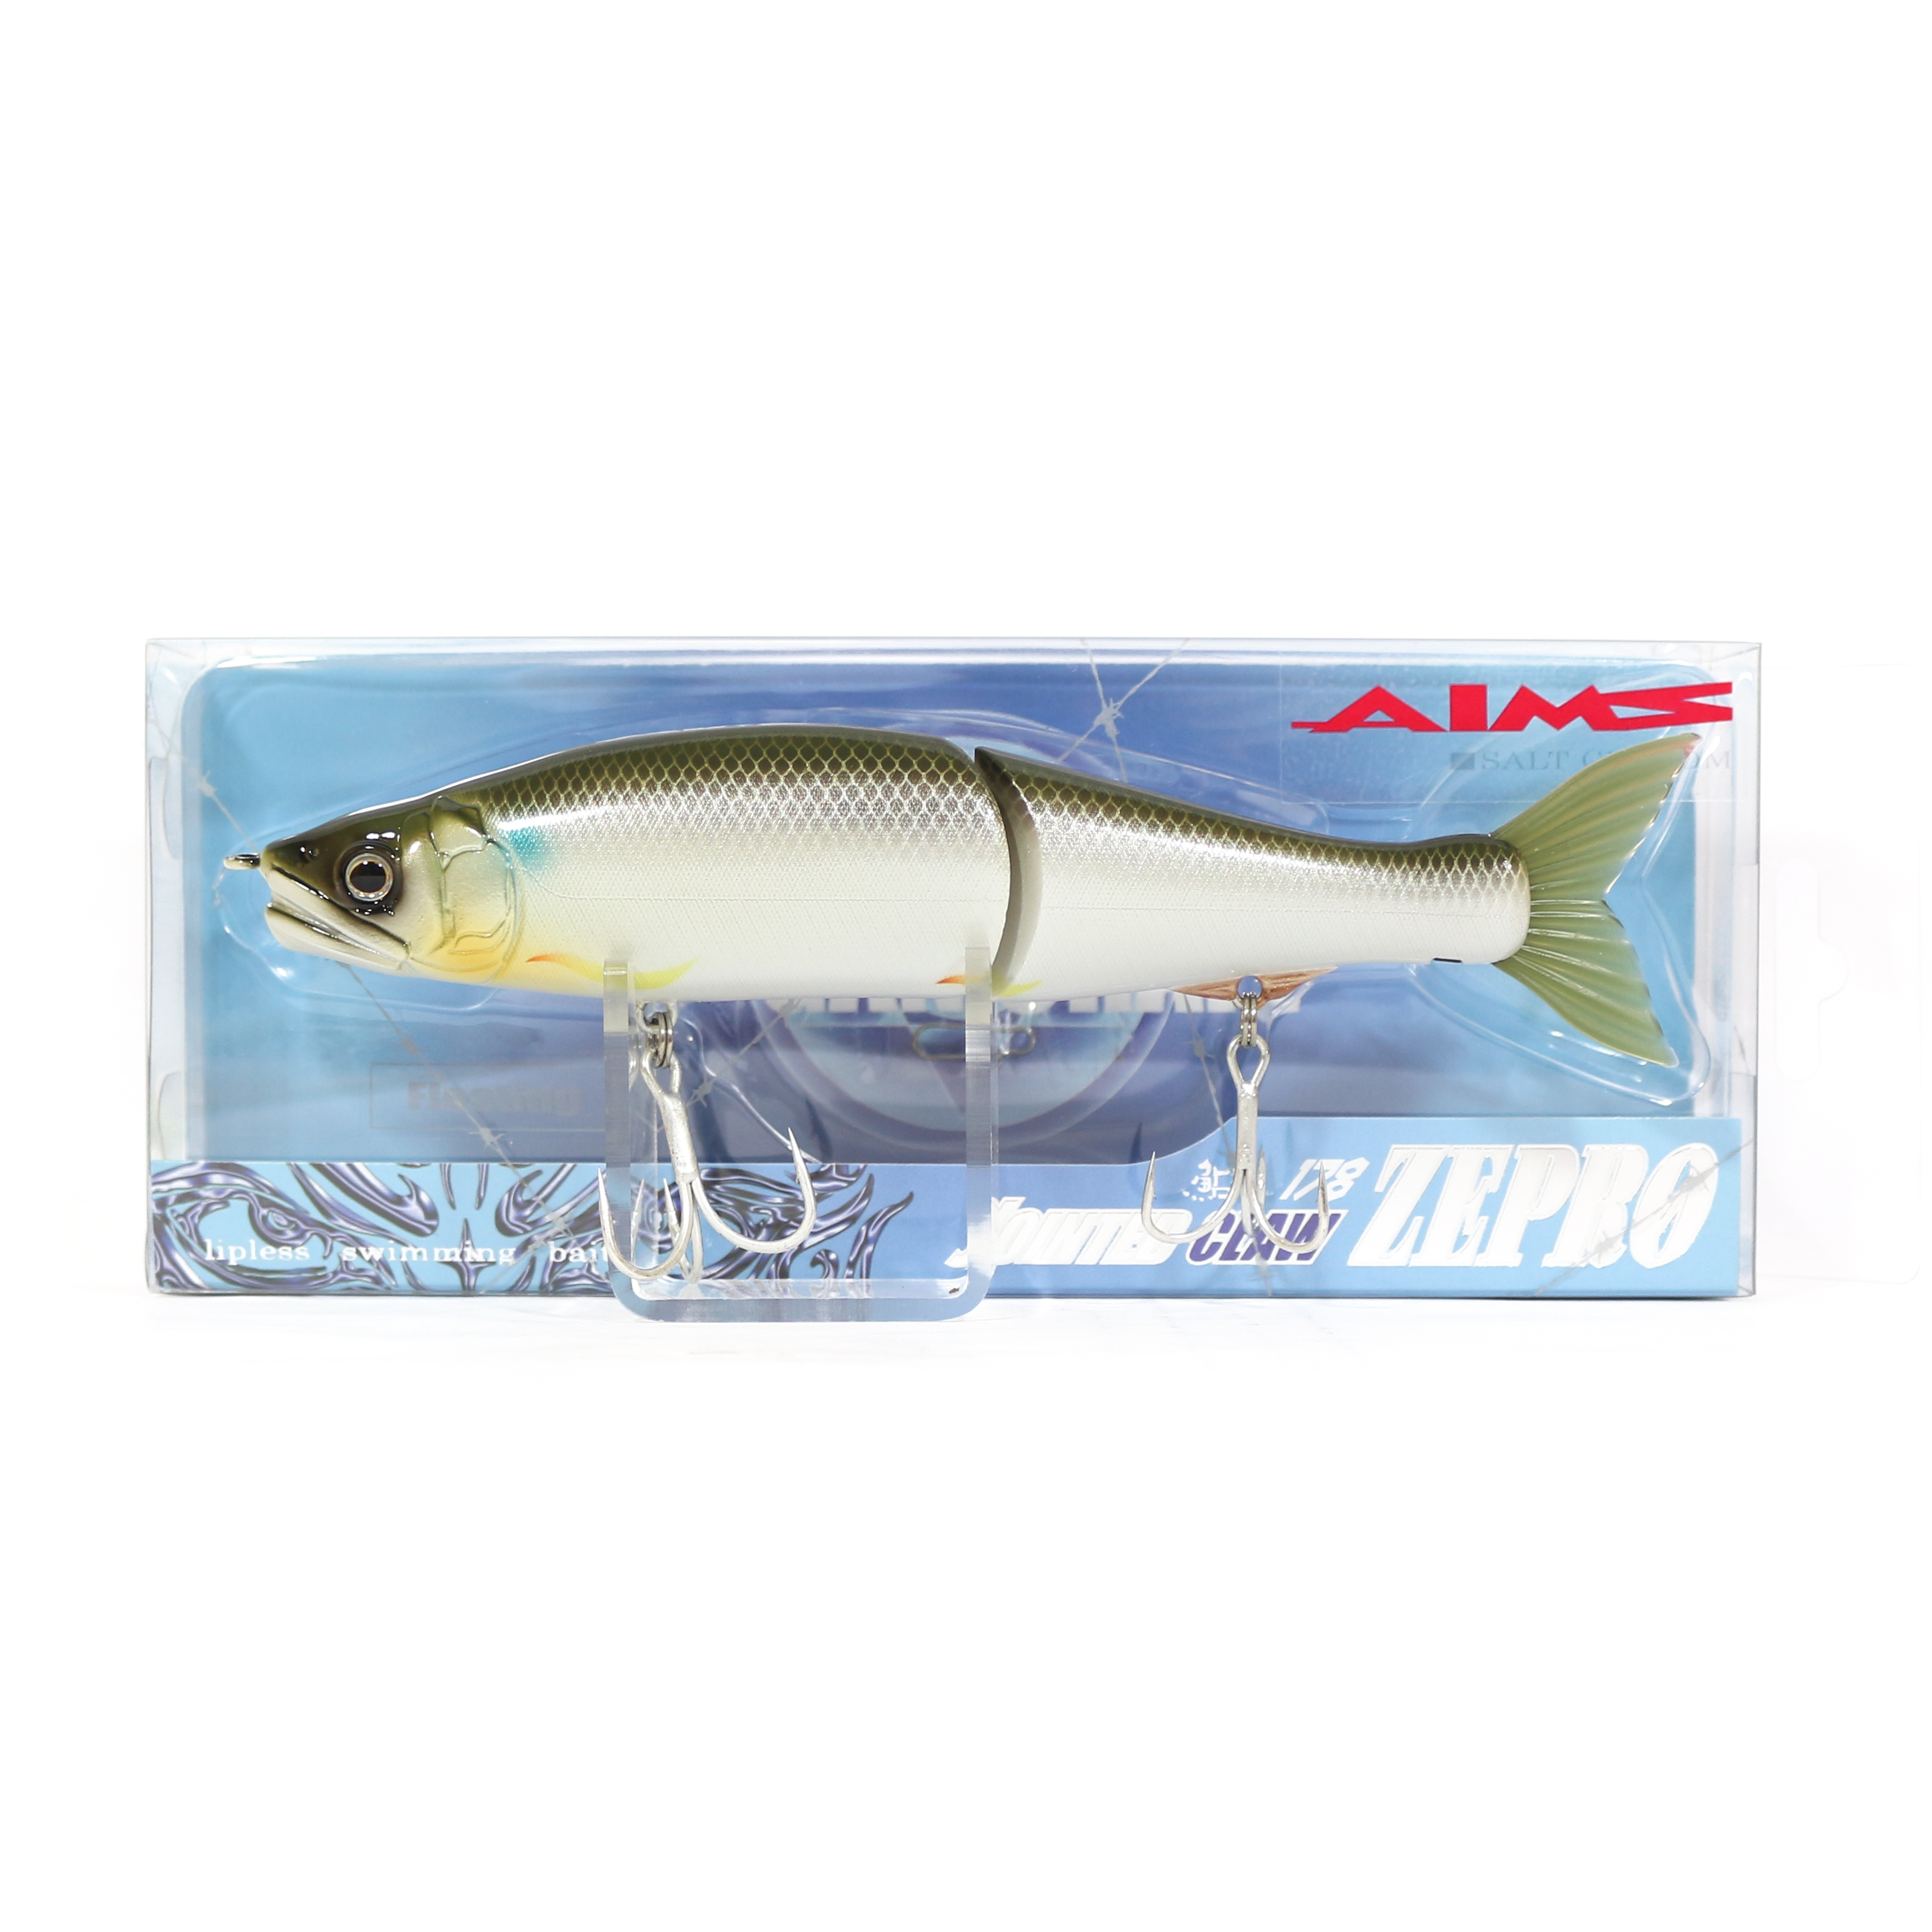 Gan Craft Jointed Claw 178 Zepro Neutral Suspend Jointed Lure AS-07 (0816)